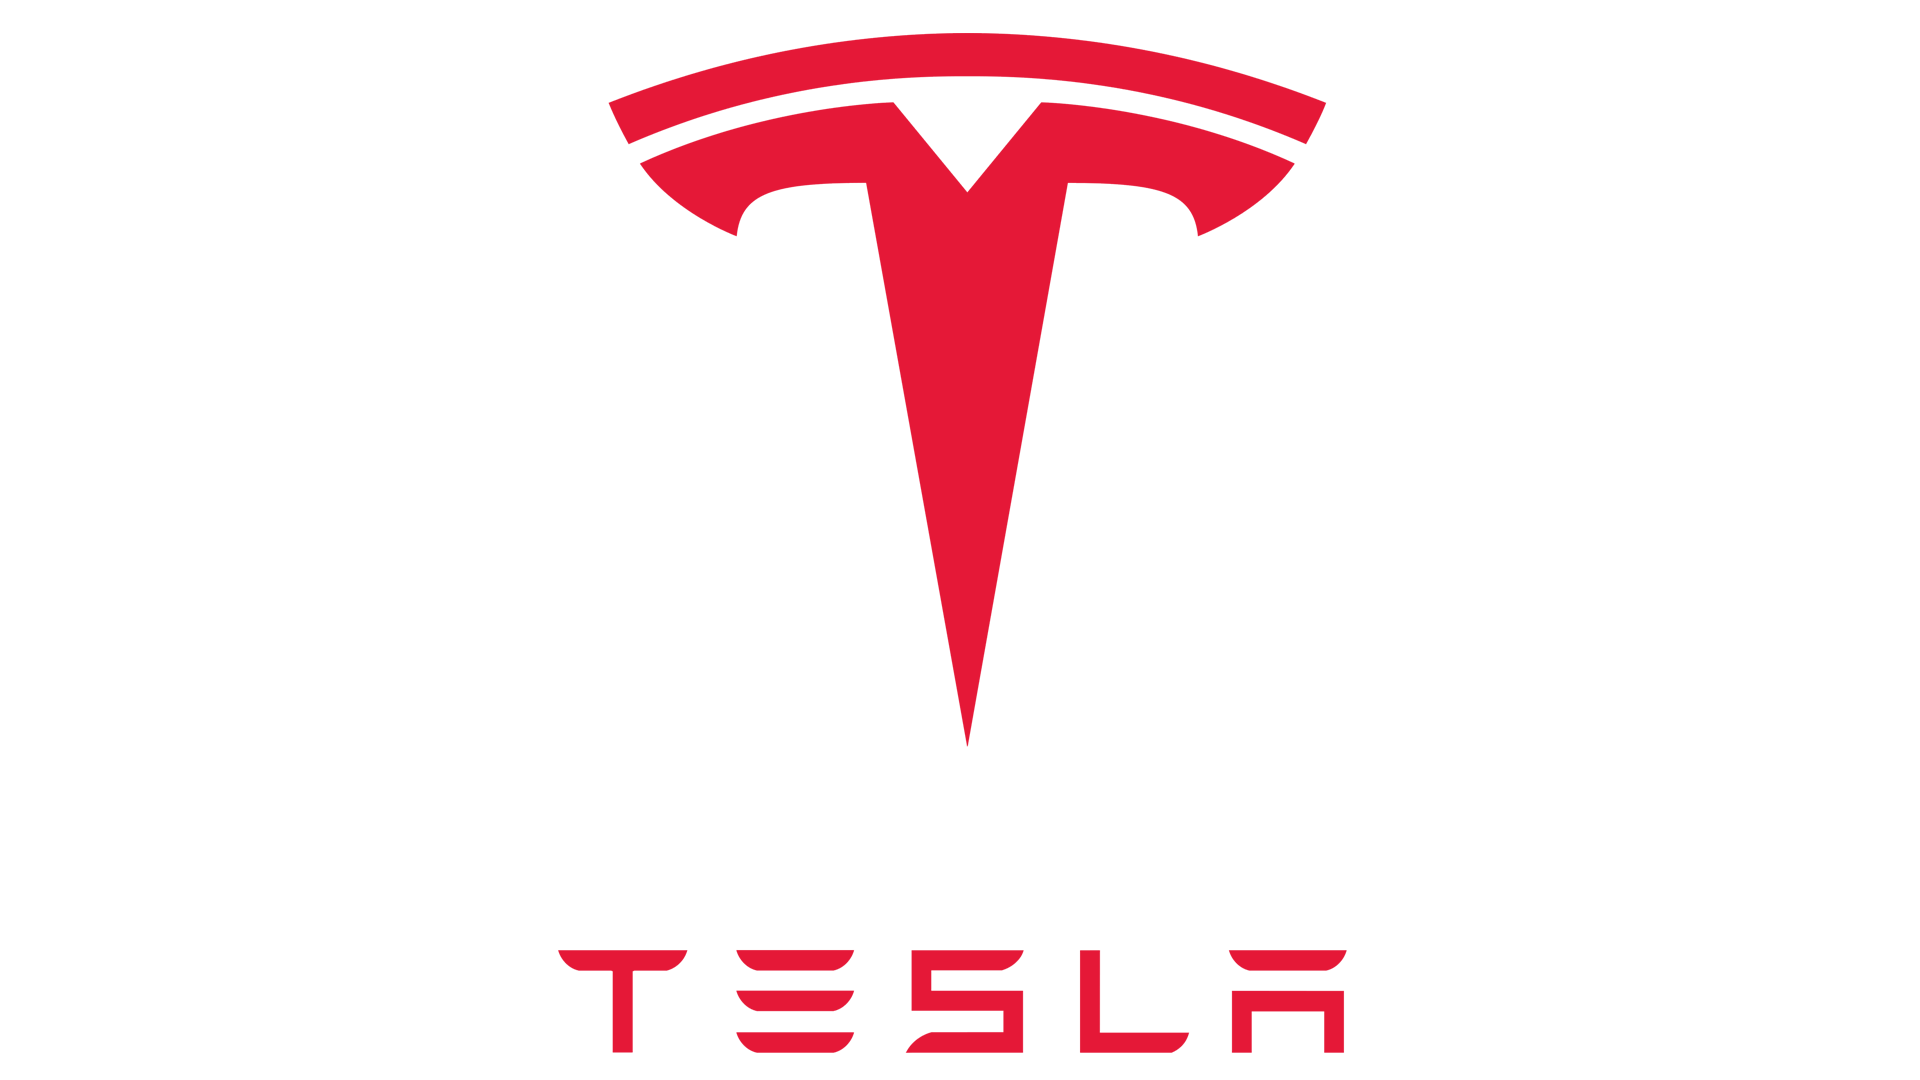 Tesla Logo Tesla Symbol Meaning History And Evolution